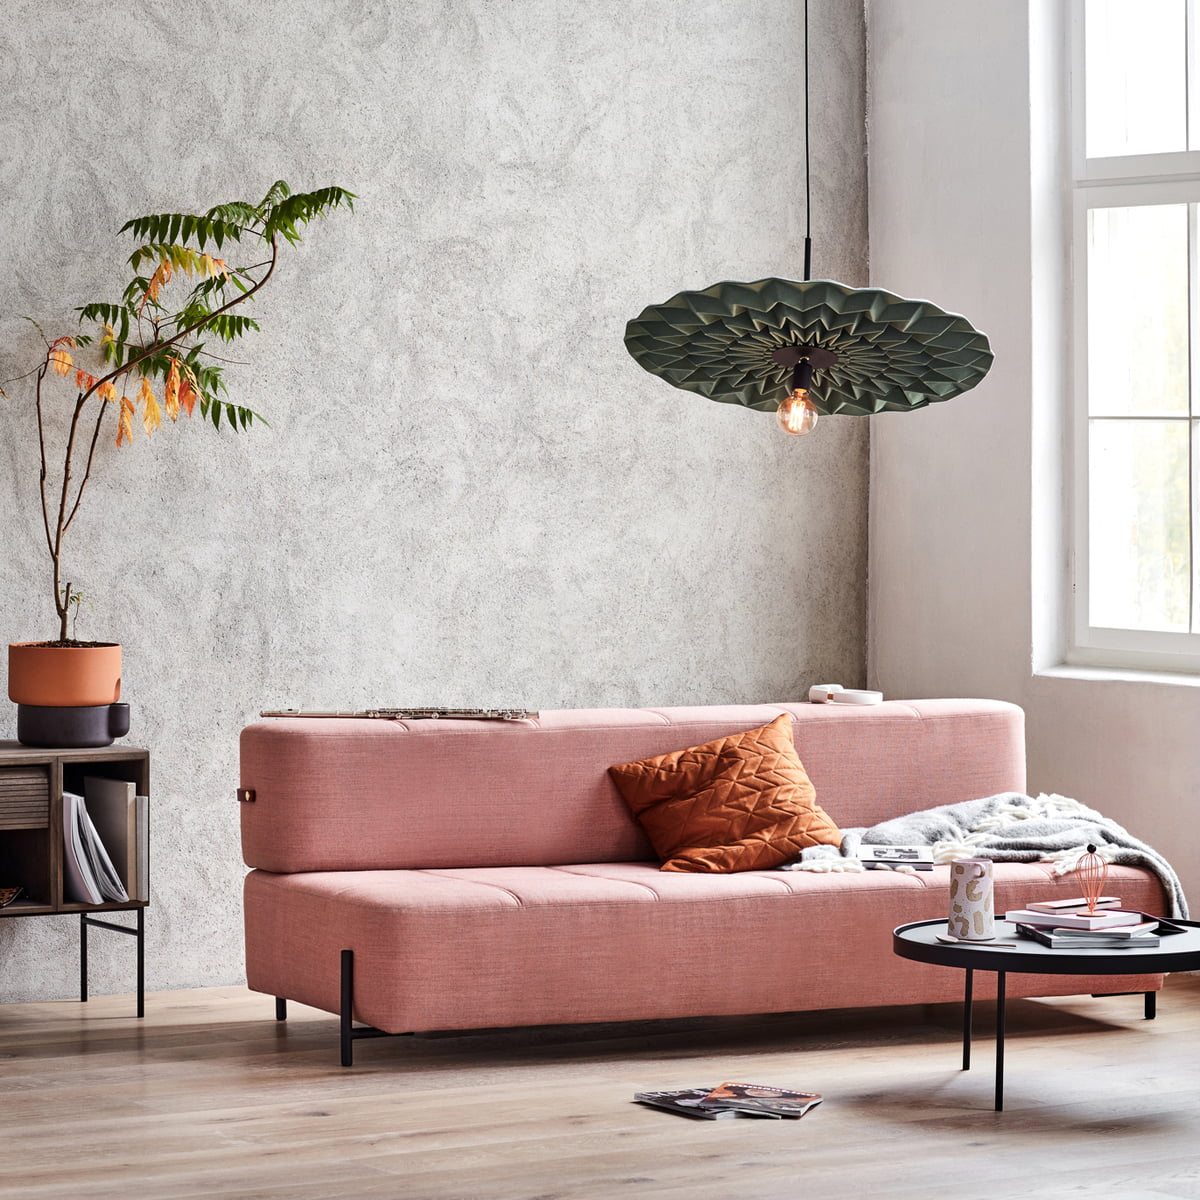 Excellent Northern Daybed With Rosa Schlafsofa